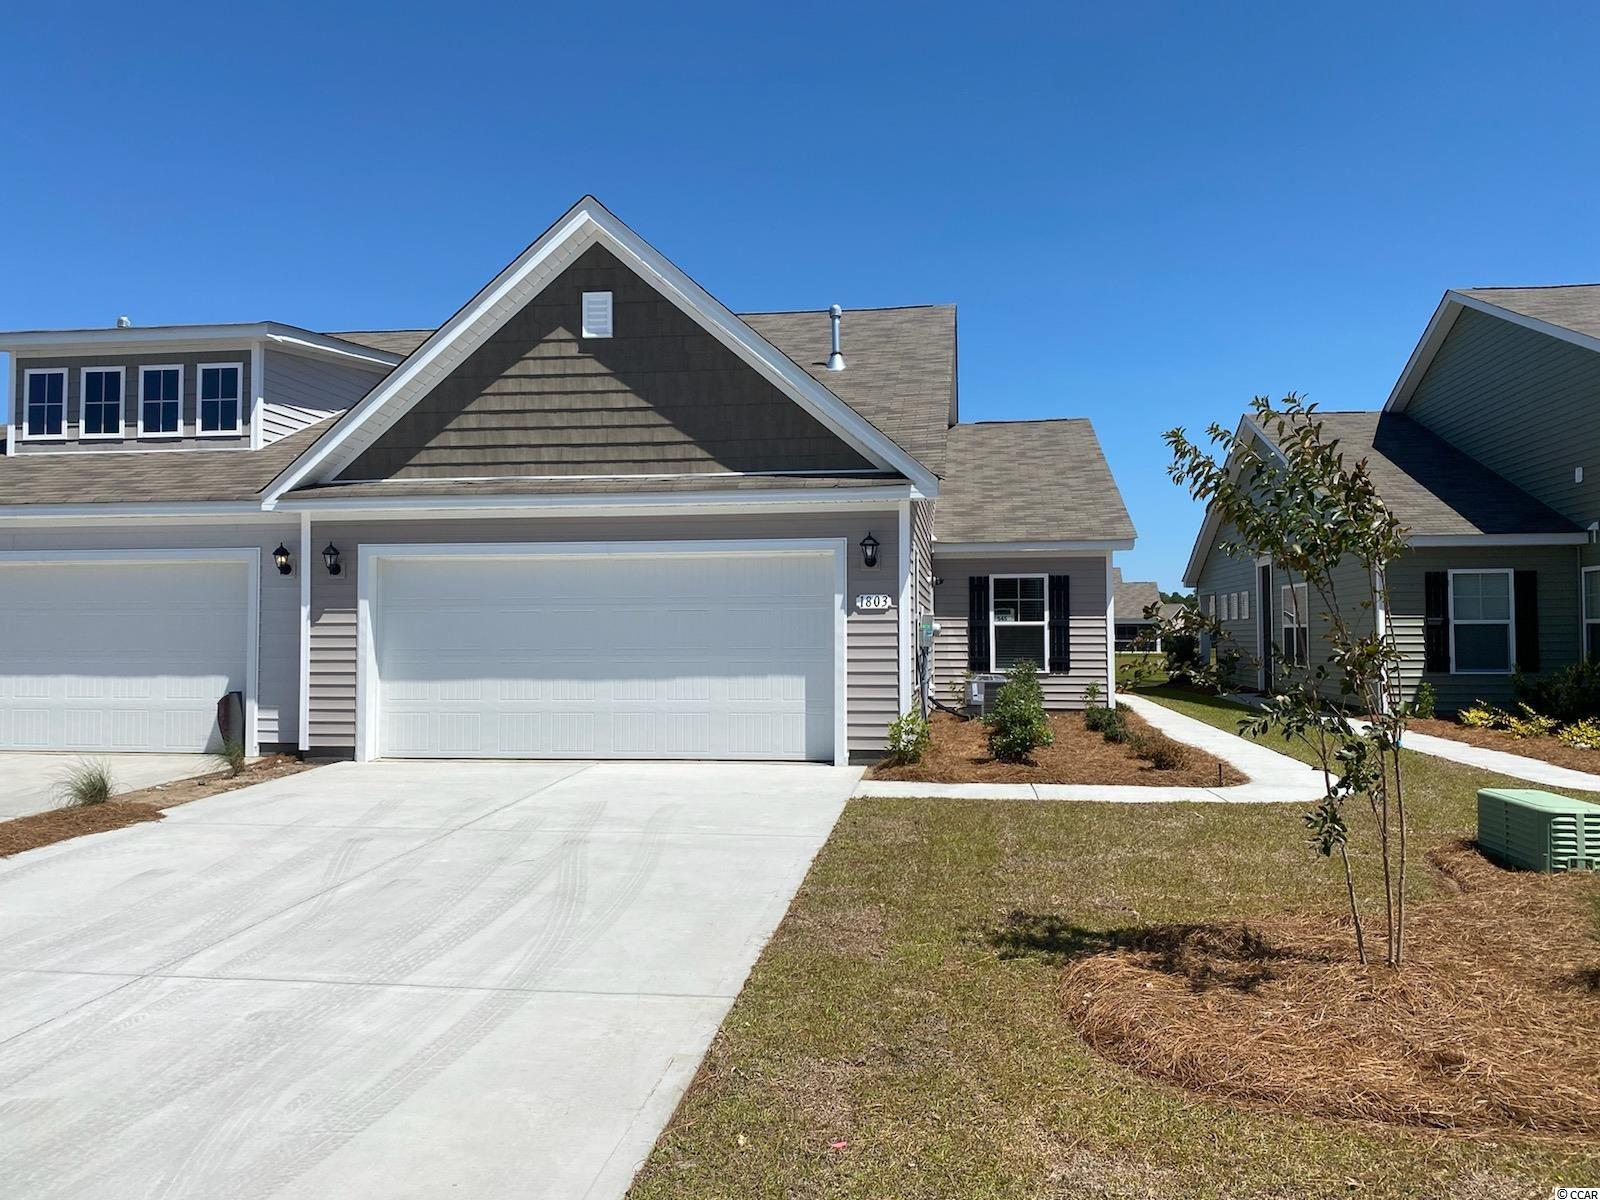 Enjoy the laid back coastal lifestyle where all of your exterior maintenance is taken care of! A rare opportunity of a duplex being offered in Carolina Forest that also features an attached two-car garage. Upon entry you are greeted with a very open layout and high vaulted ceilings. The split bedroom floor plan offers privacy when you have guests visiting you at the beach, along with functionality. This home will also have a spacious rear covered porch with pond views that is great for morning coffee! Granite countertops, tankless water heater, white painted cabinets, and stainless appliances with a gas range all included. This is America's Smart Home! Ask an agent today about our industry leading smart home package that is standard in every home. *Photos are of a similar Tuscan home. (Home and community information, including pricing, included features, terms, availability and amenities, are subject to change prior to sale at any time without notice or obligation.  Square footages are approximate.  Pictures, photographs, colors, features, and sizes are for illustration purposes only and will vary from the homes as built.  Equal housing opportunity builder.)